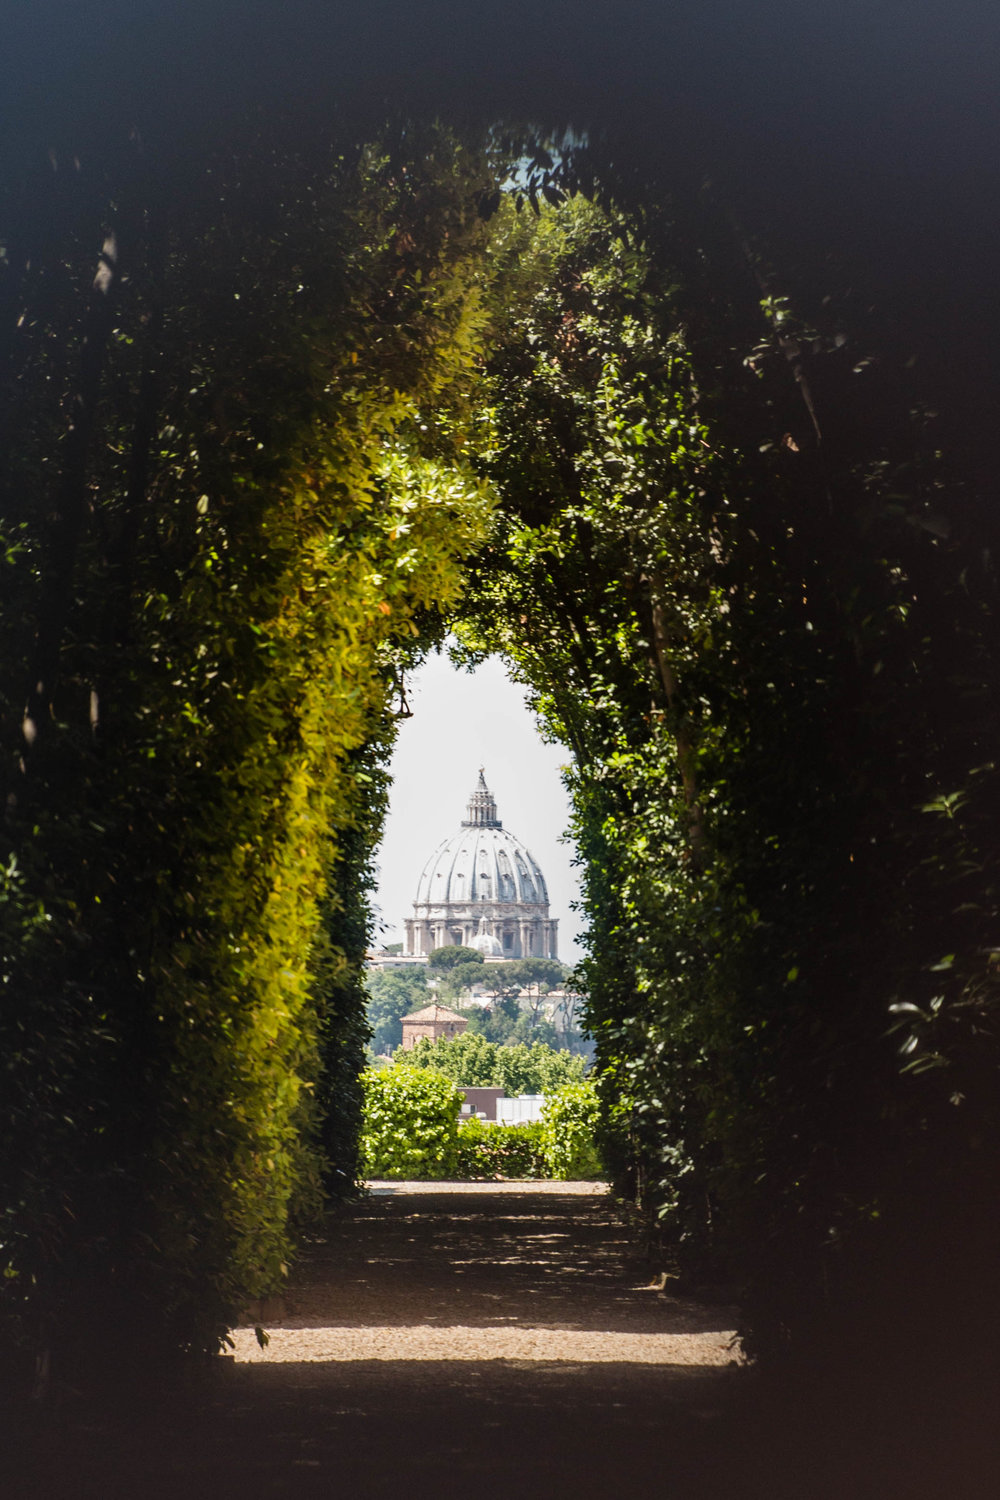 The Secret Keyhole, Aventine Hill, Rome Italy